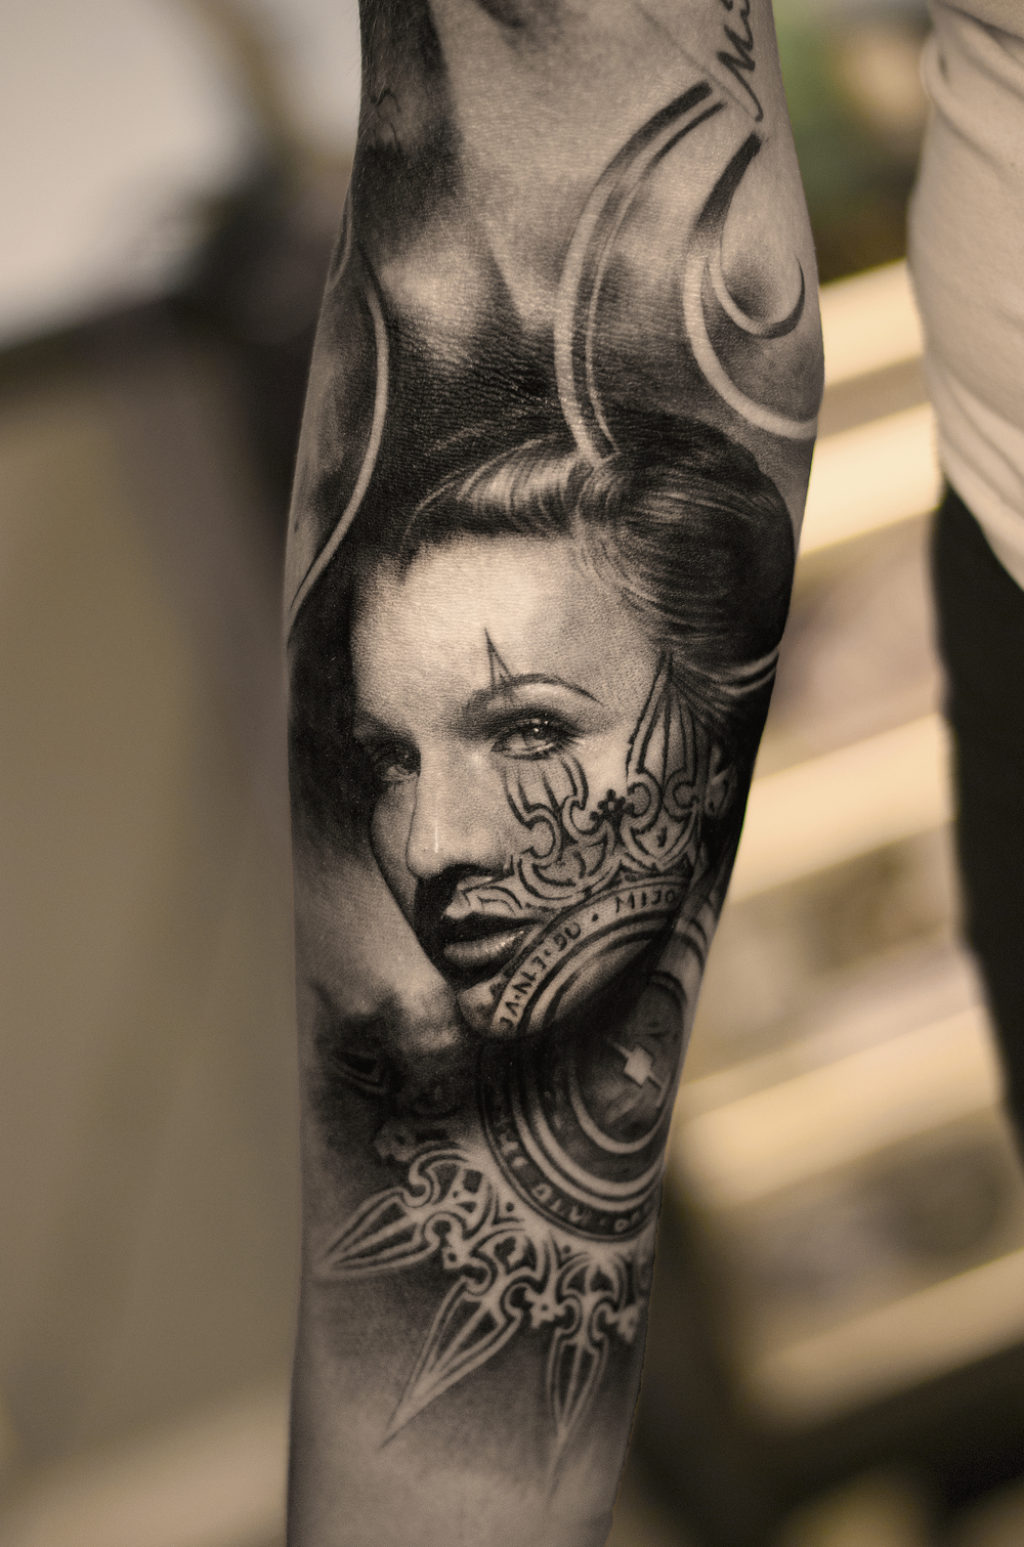 One of the most amazing Bang Bang Tattoos of a beautiful woman on a man's arm